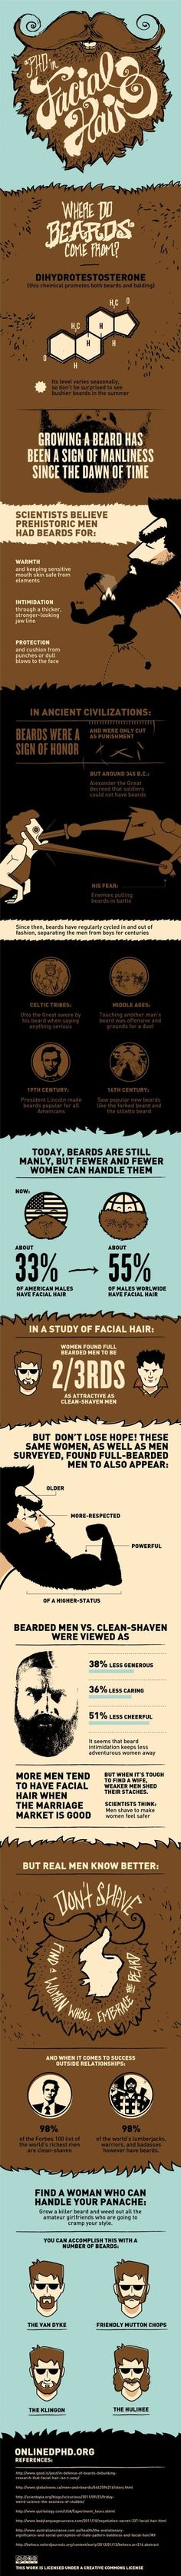 PHD in Facial Hair. This is seriously the best thing I have ever seen.